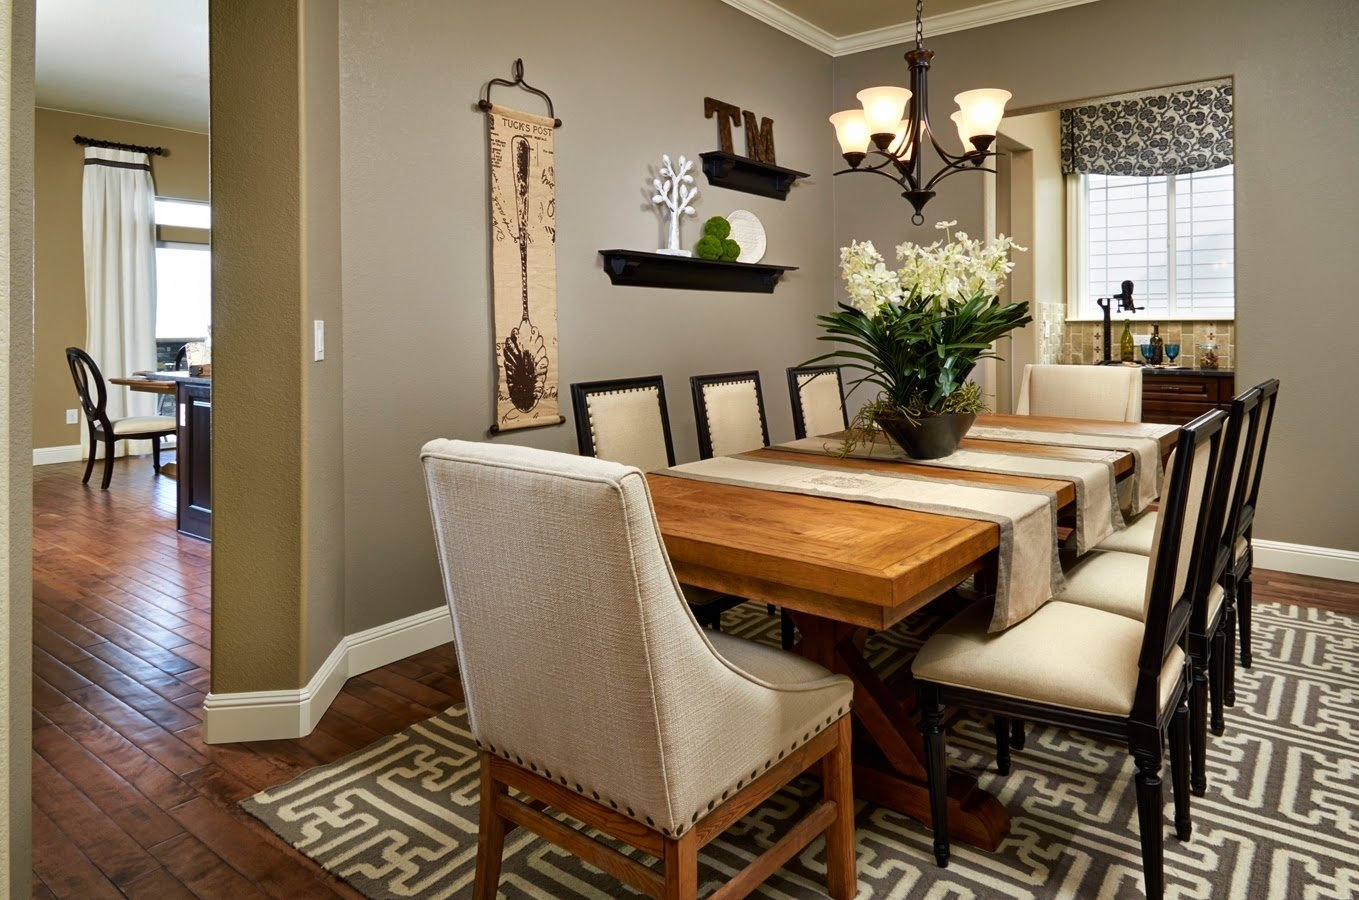 10 Lovable Centerpiece Ideas For Dining Room Table best centerpiece ideas for dining room table zachary horne homes 1 2020